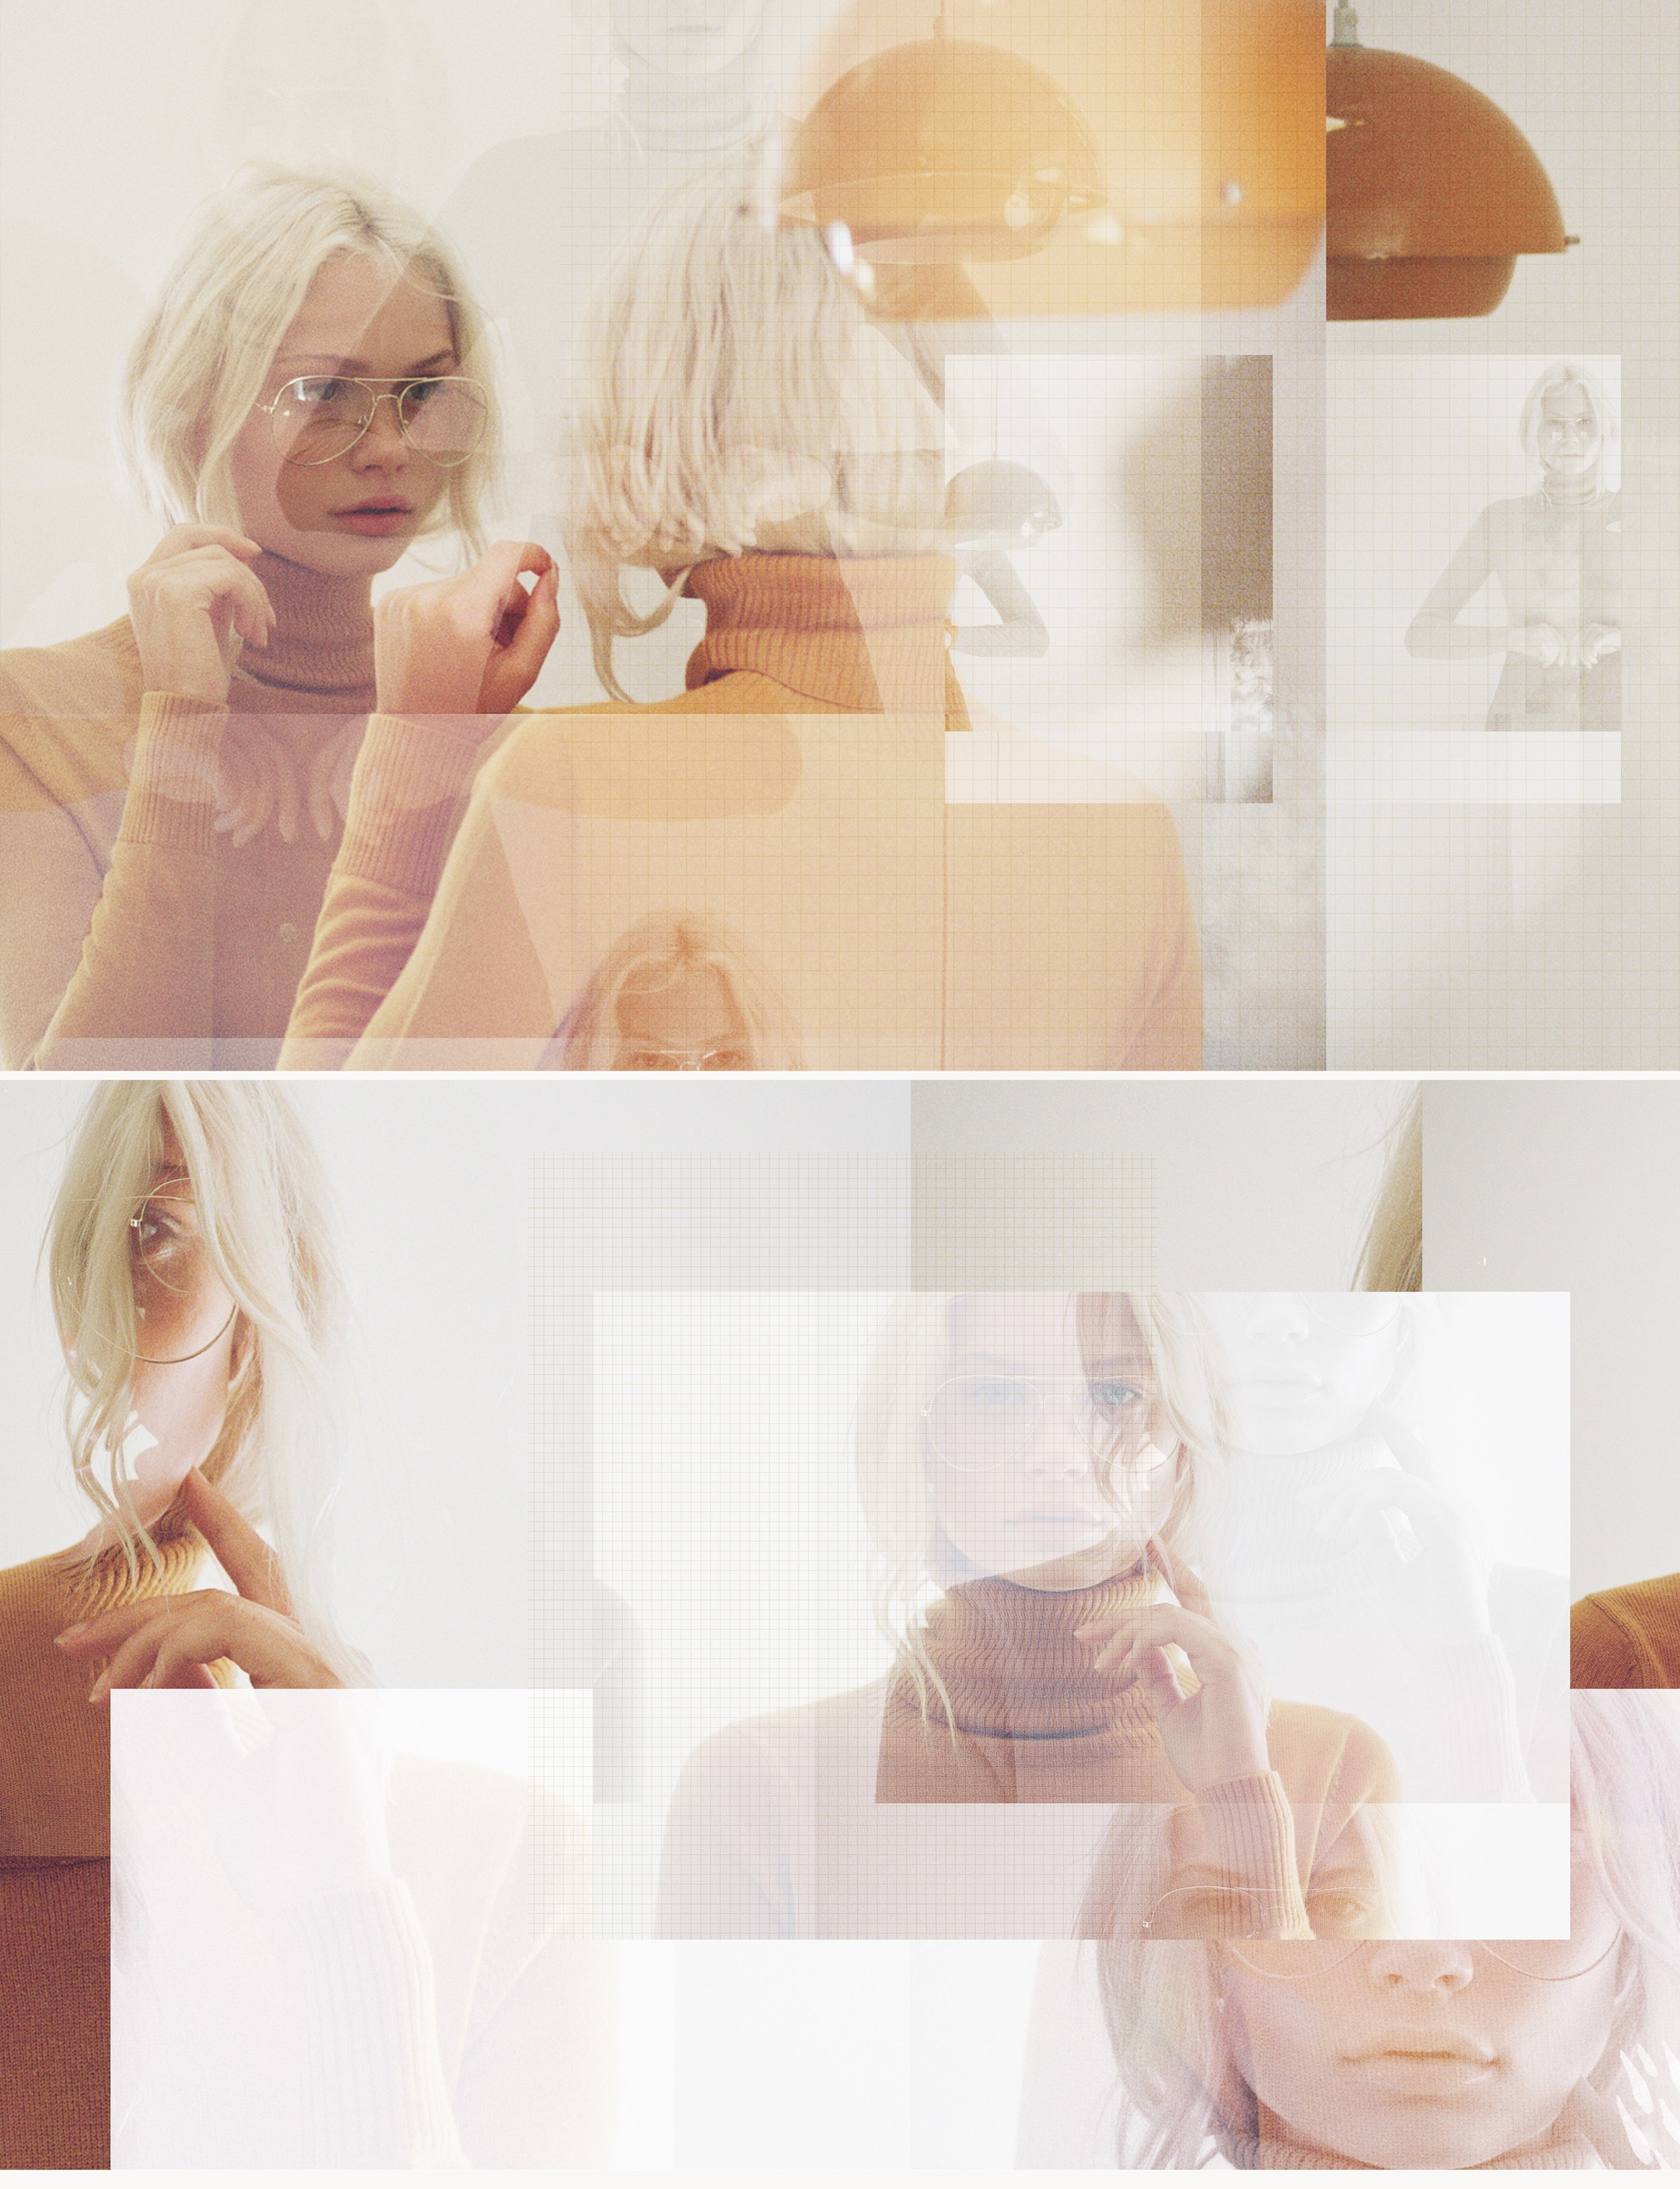 collage of delilah parillo | photos from stoned immaculate